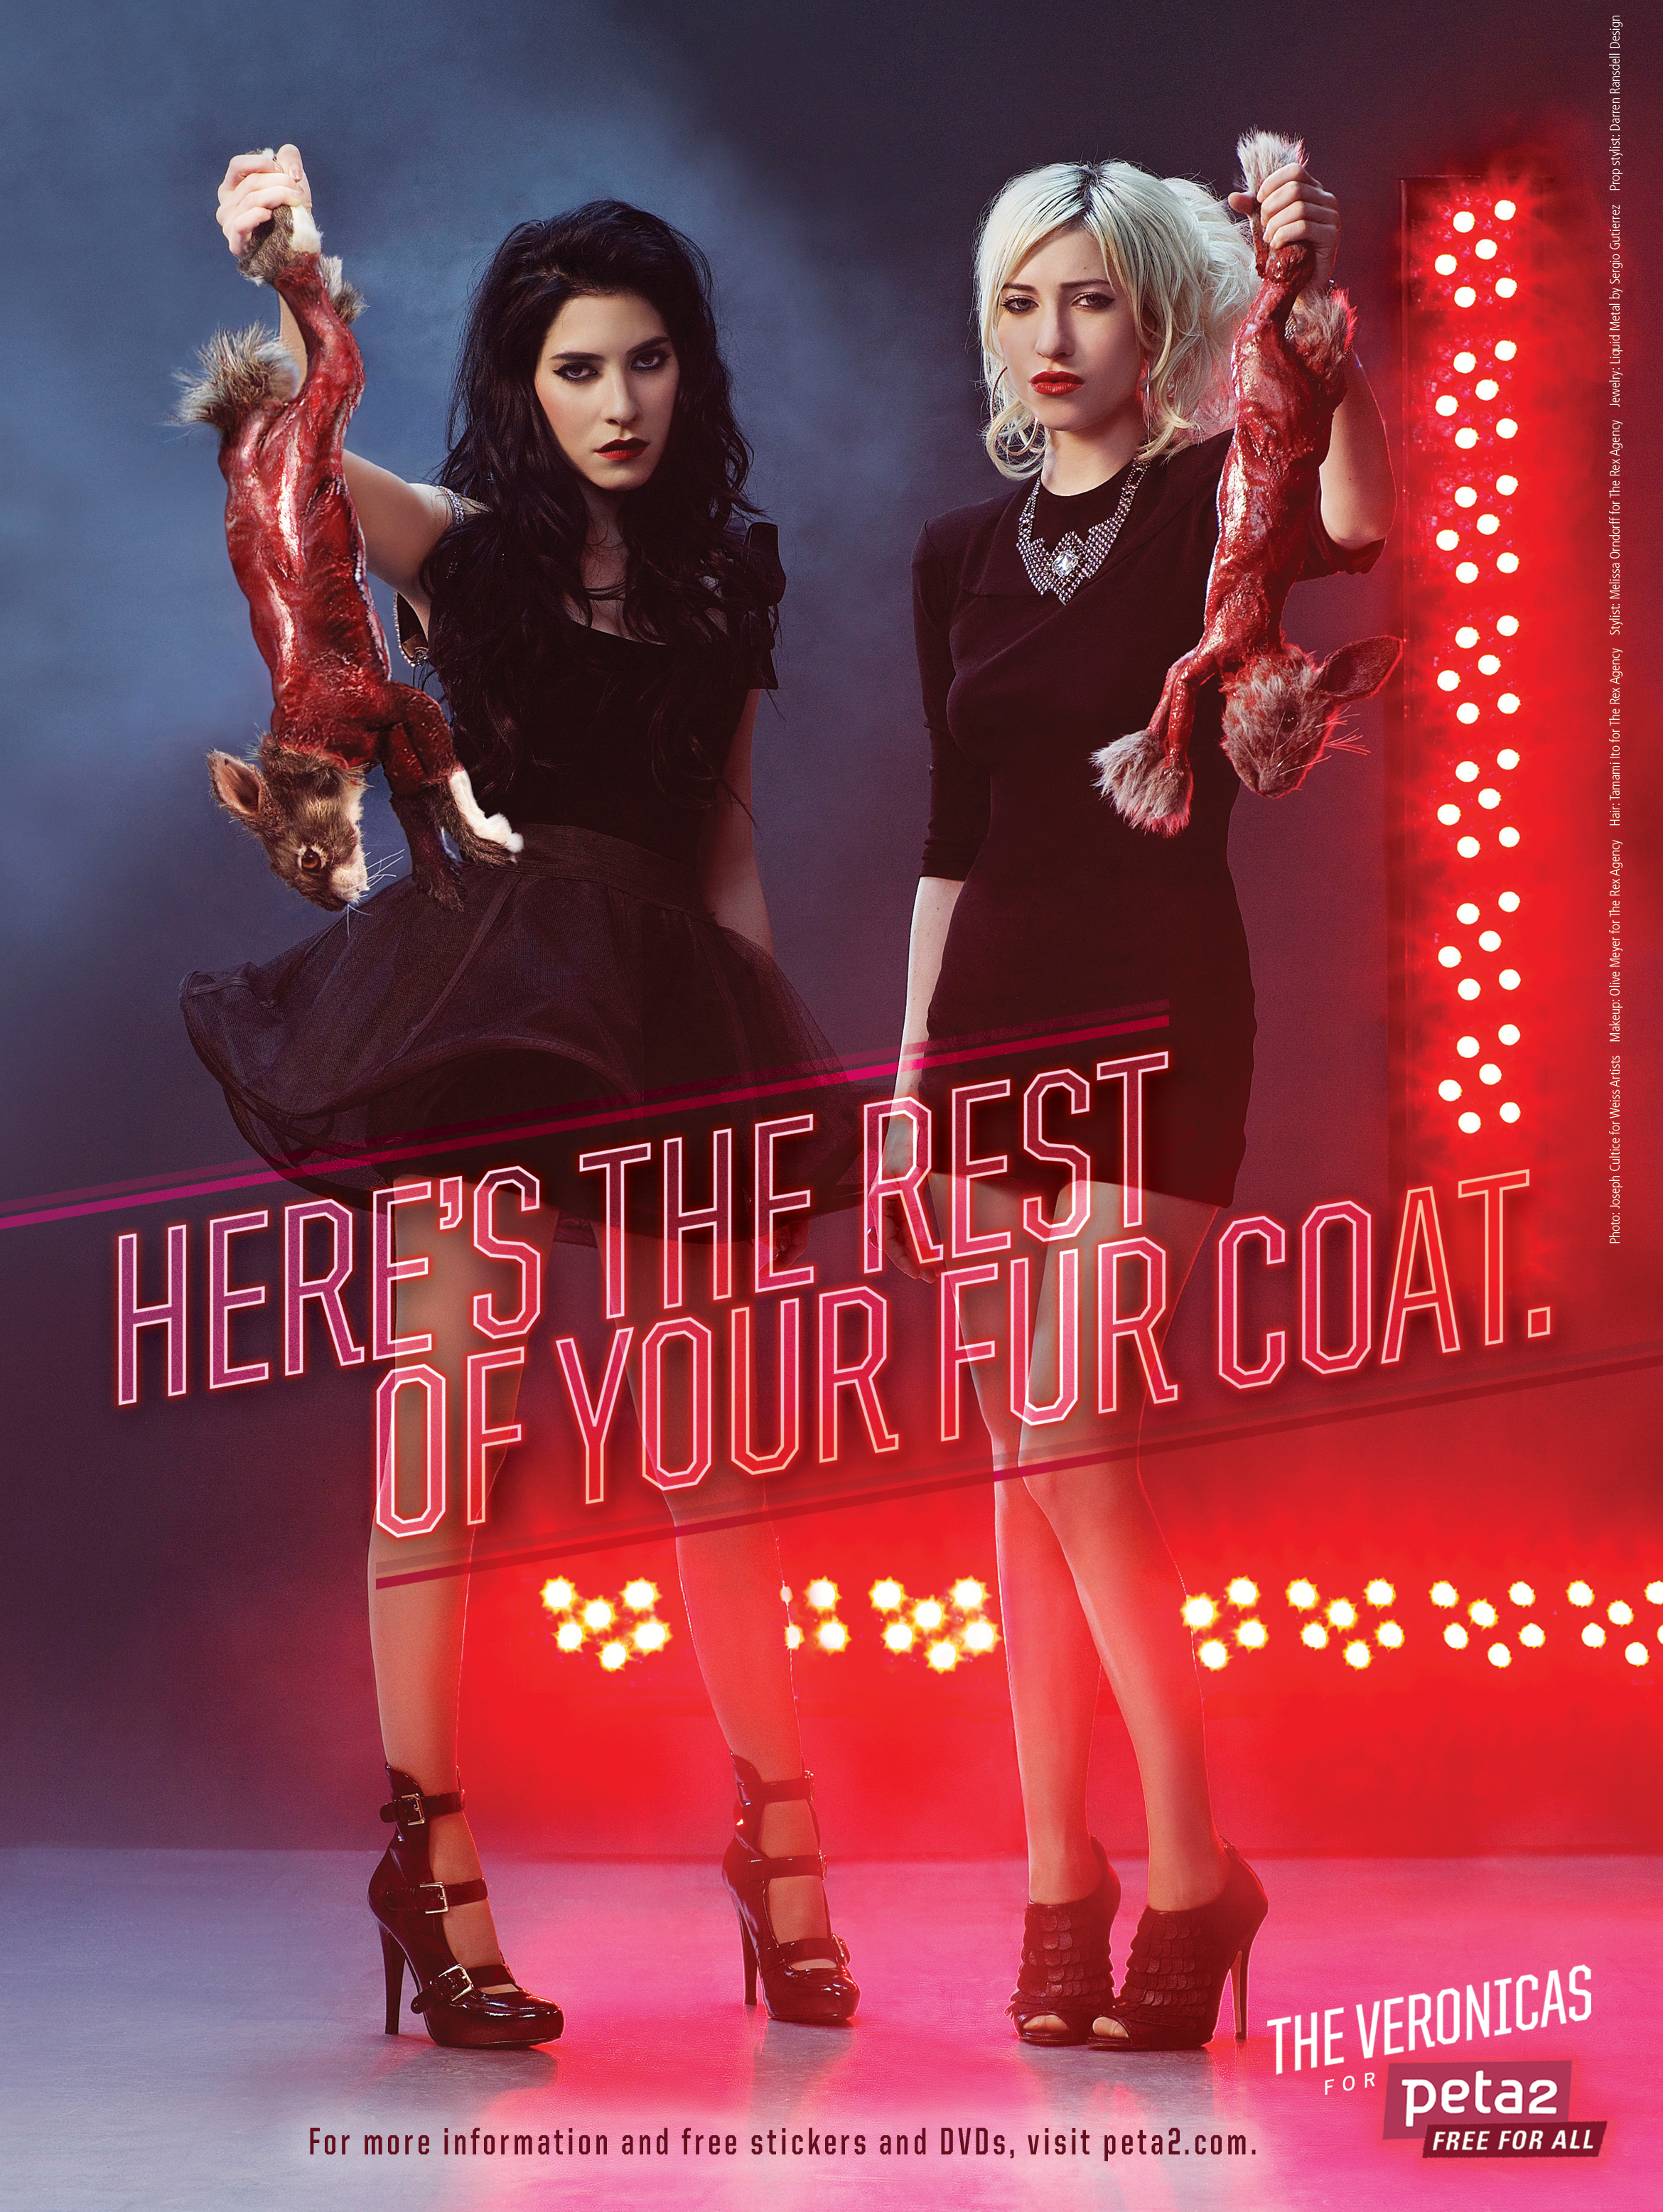 The Veronicas anti-fur PSA